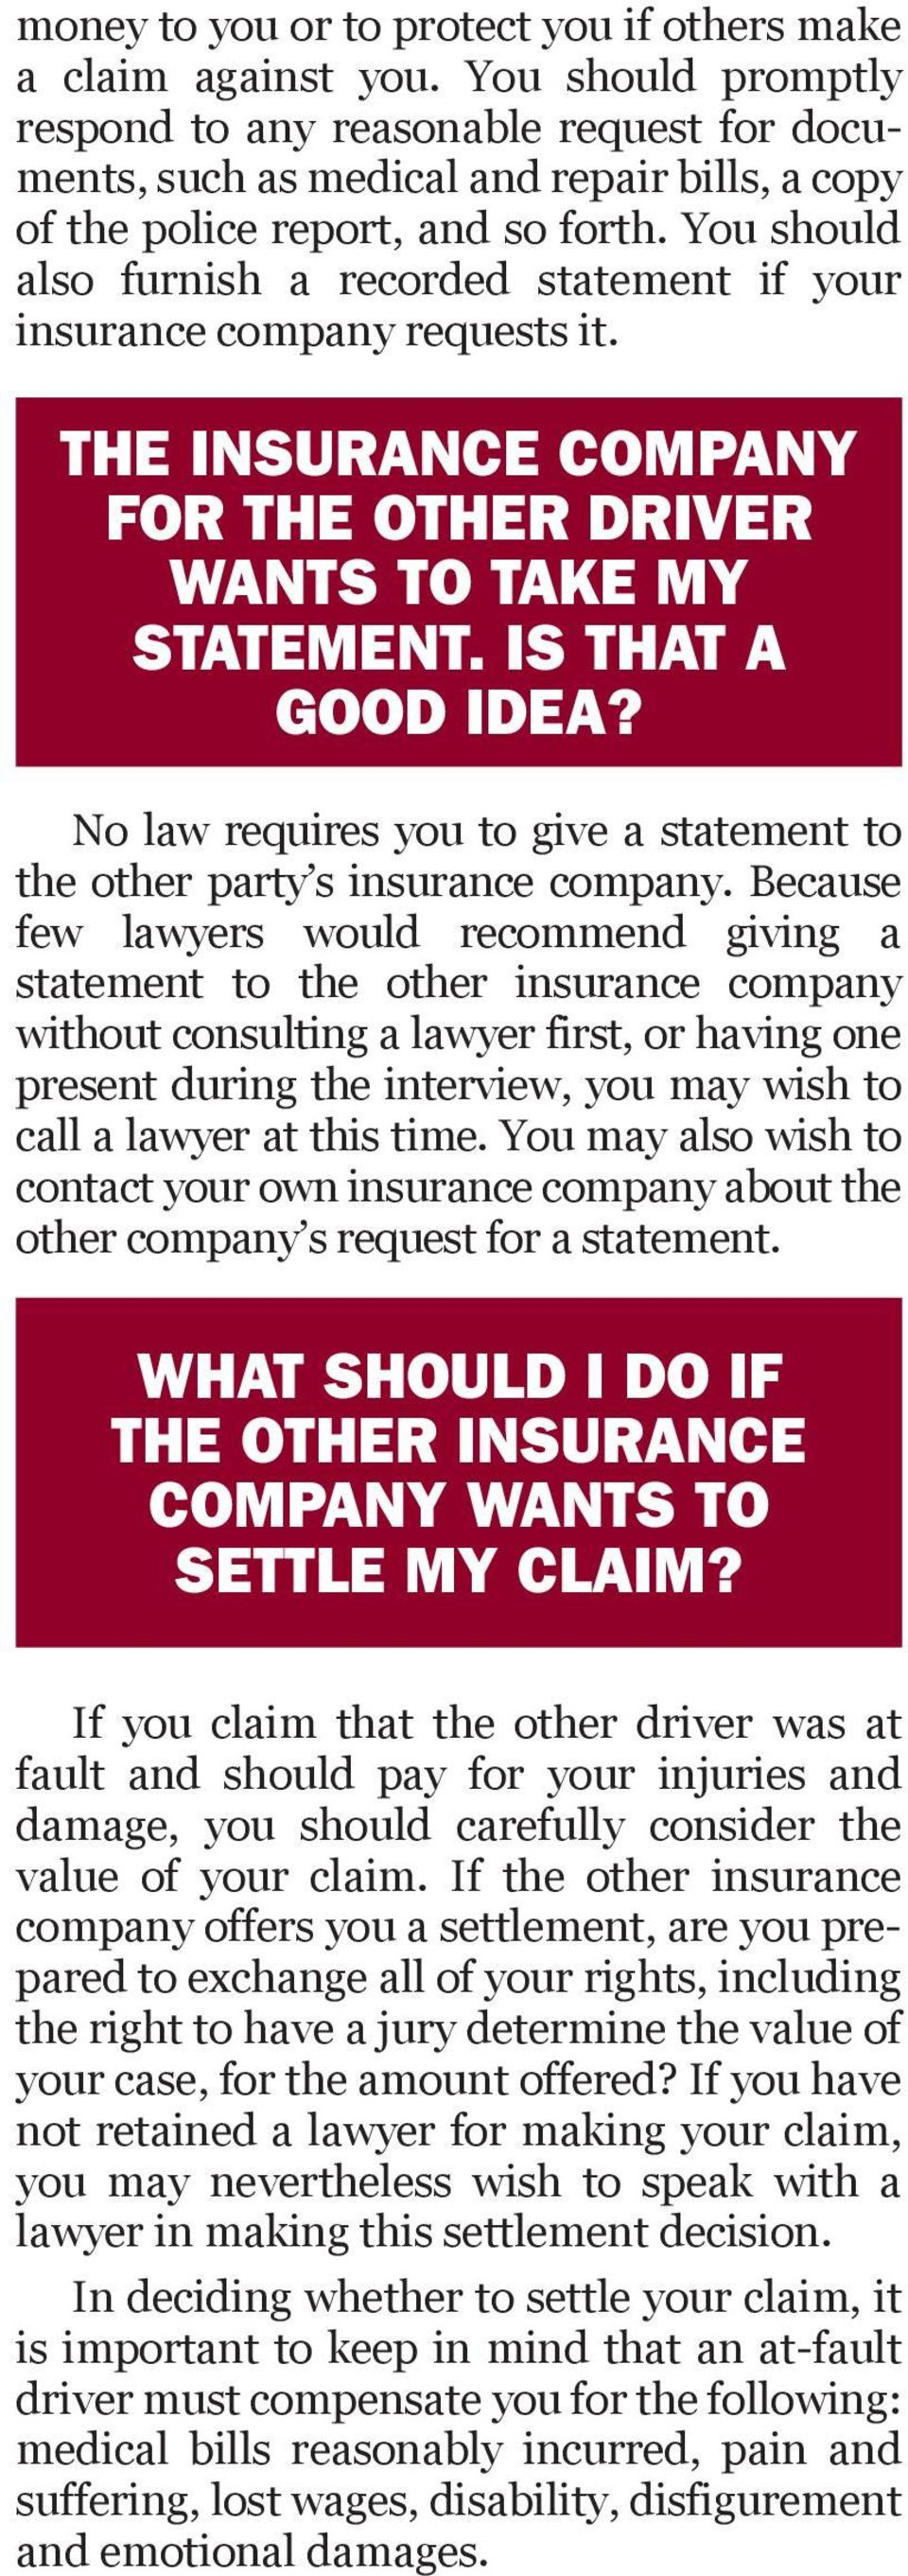 You should also furnish a recorded statement if your insurance company requests it. THE T INSURANCE H COMPANYE FOR THE OTHER DRIVER WANTS TO TAKE MY STATEMENT. IS THAT A GOOD IDEA?